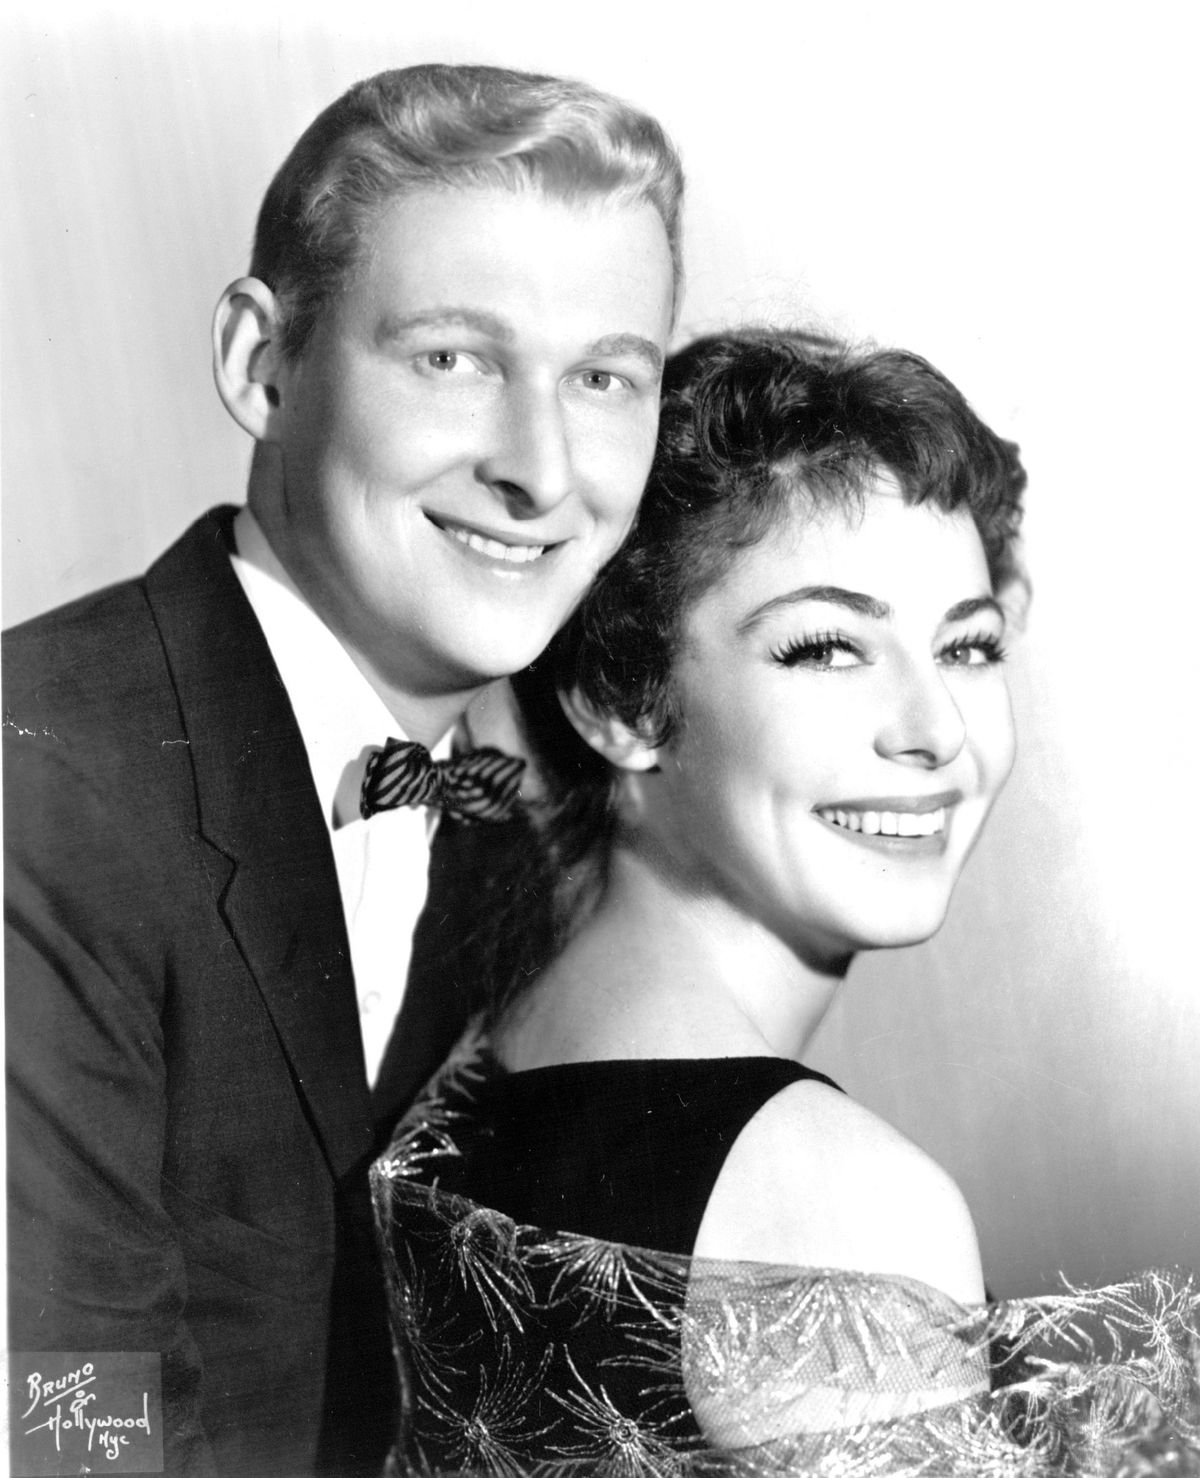 """Mike Nichols and Elaine May were familiar faces in Chicago beginning in the 1950s with the Hyde Park-based improv comedy troupe known as The Compass Players, the precursor to Second City. The comedy duo would go on to a hit career on Broadway, and their 1960 comedy album """"An Evening with Mike Nichols and Elaine May"""" won a Grammy Award."""